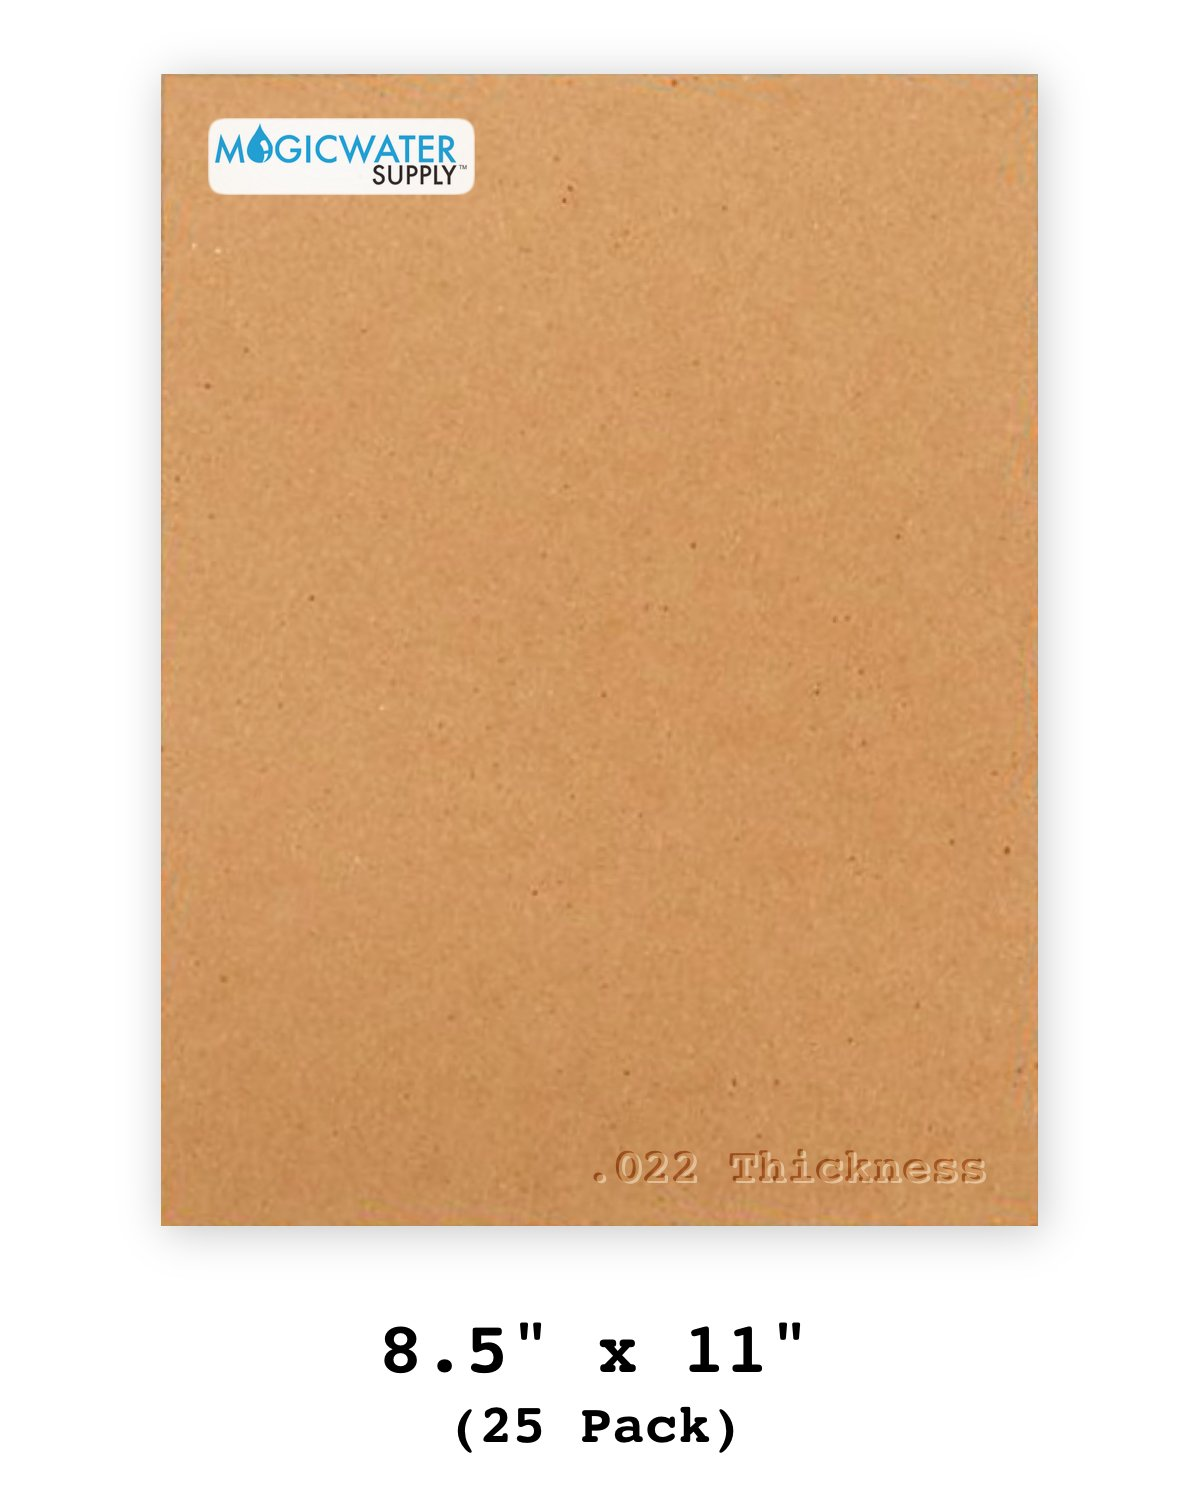 25 Sheets Chipboard 8.5 x 11 inch - 22pt (Point) Light Weight Brown Kraft Cardboard Scrapbook Sheets & Picture Frame Backing (.022 Caliper Thick) Paper Board | MagicWater Supply MWS